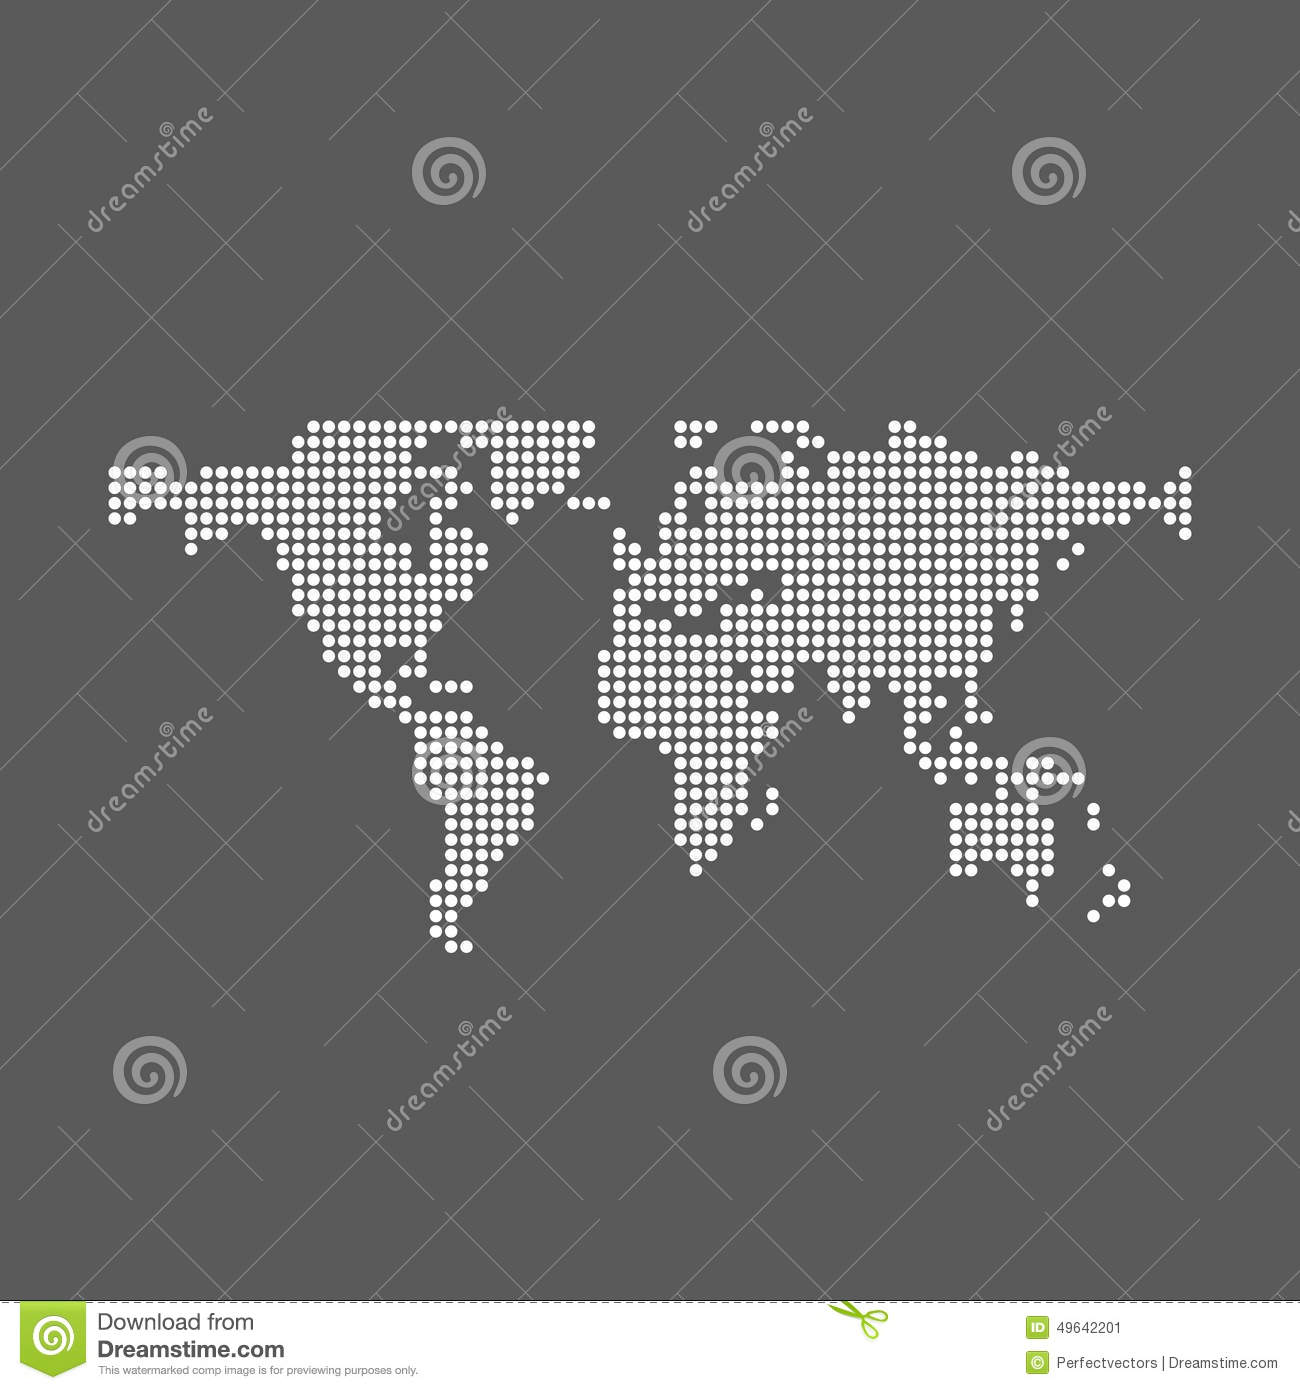 Abstract computer graphic world map stock vector illustration of abstract computer graphic world map royalty free vector download gumiabroncs Choice Image